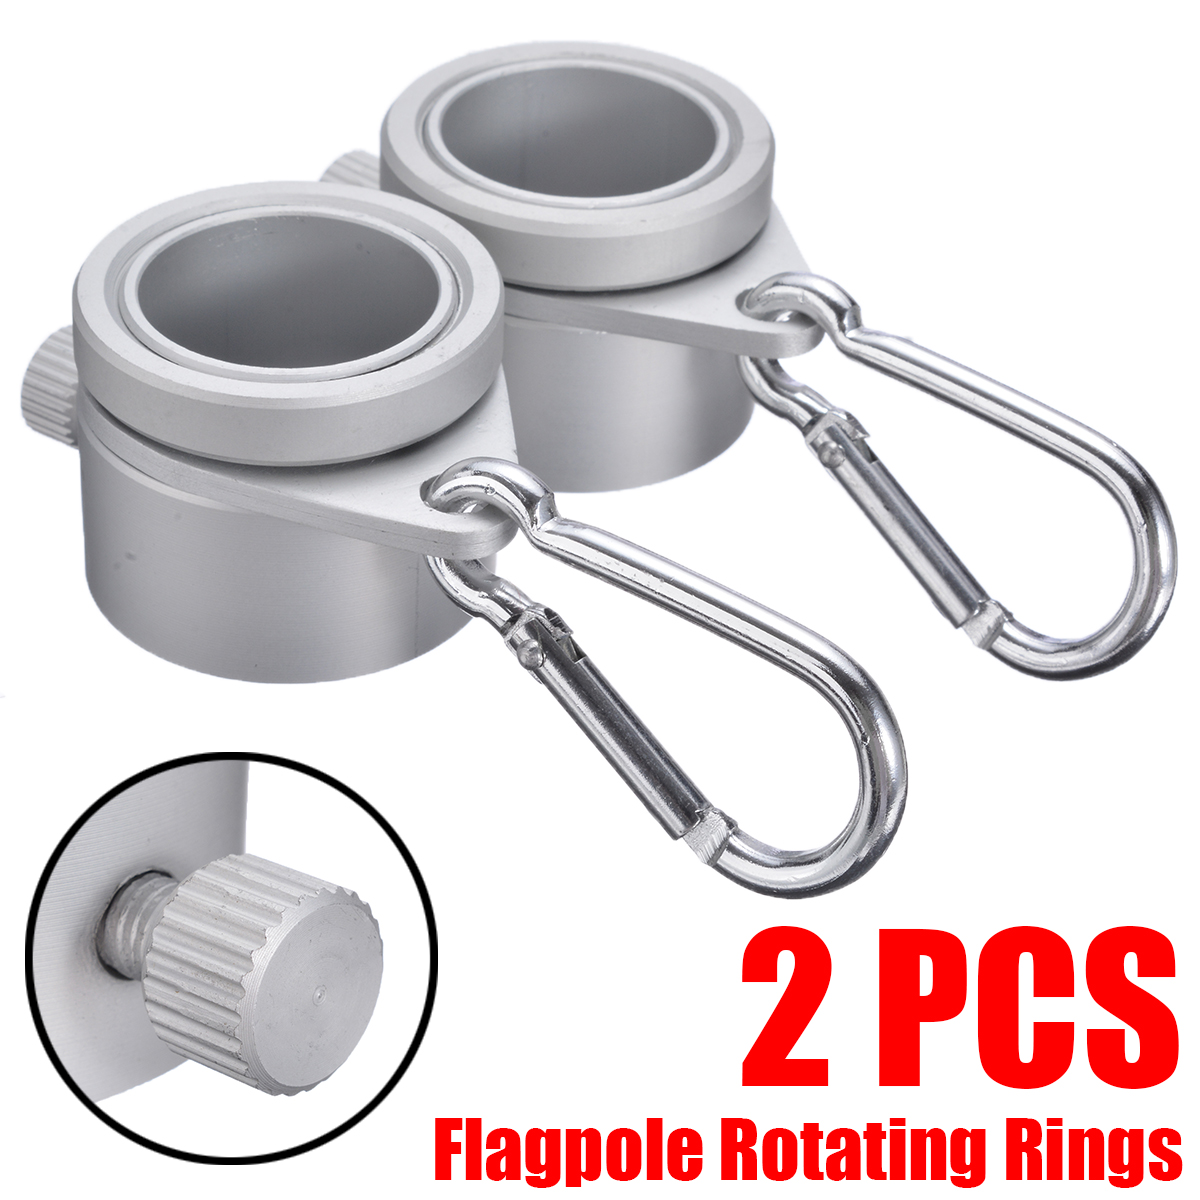 2pcs/lot New Aluminium Alloy Flag Pole Flagpole Rotating Rings Clip Anti Wrap Grommet Mounting Rings Kit Silver